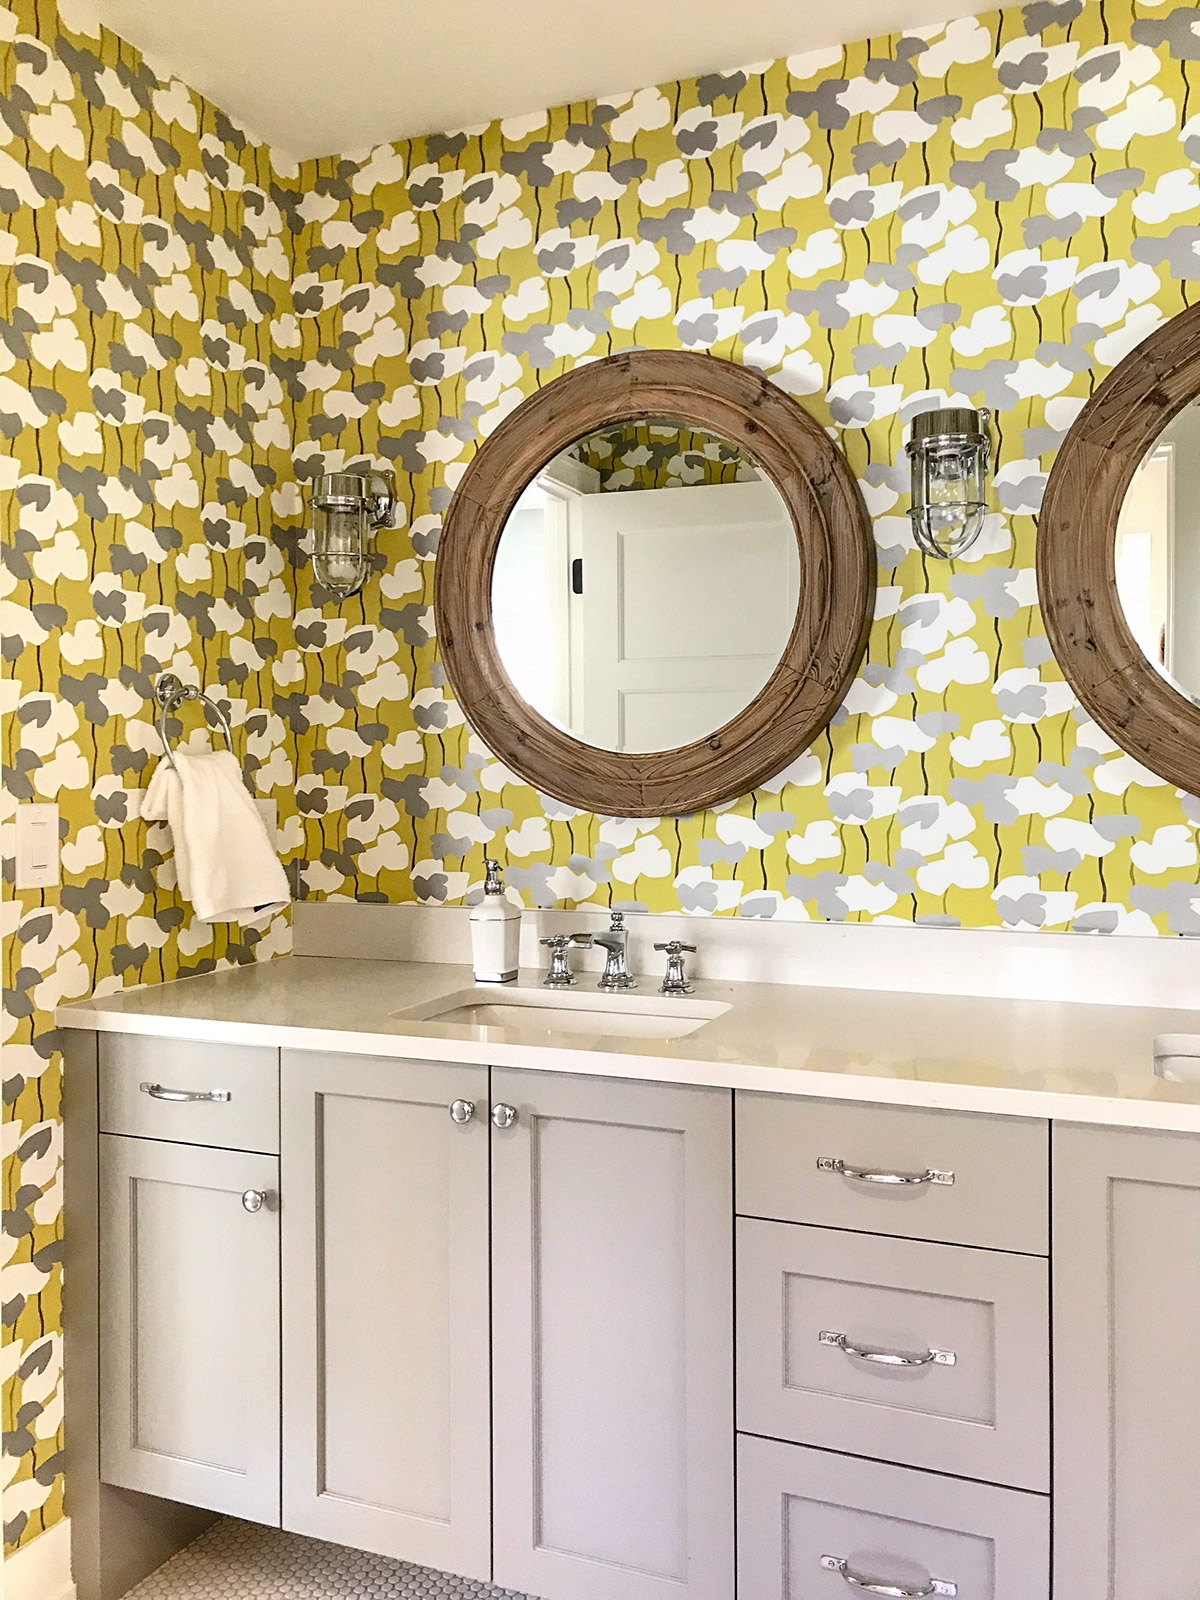 Bathroom with bold floral wallpaper and gray vanity - Bldr: Refined LLC; Designer Studio M Interiors; Photo: PK/Schneiderman's